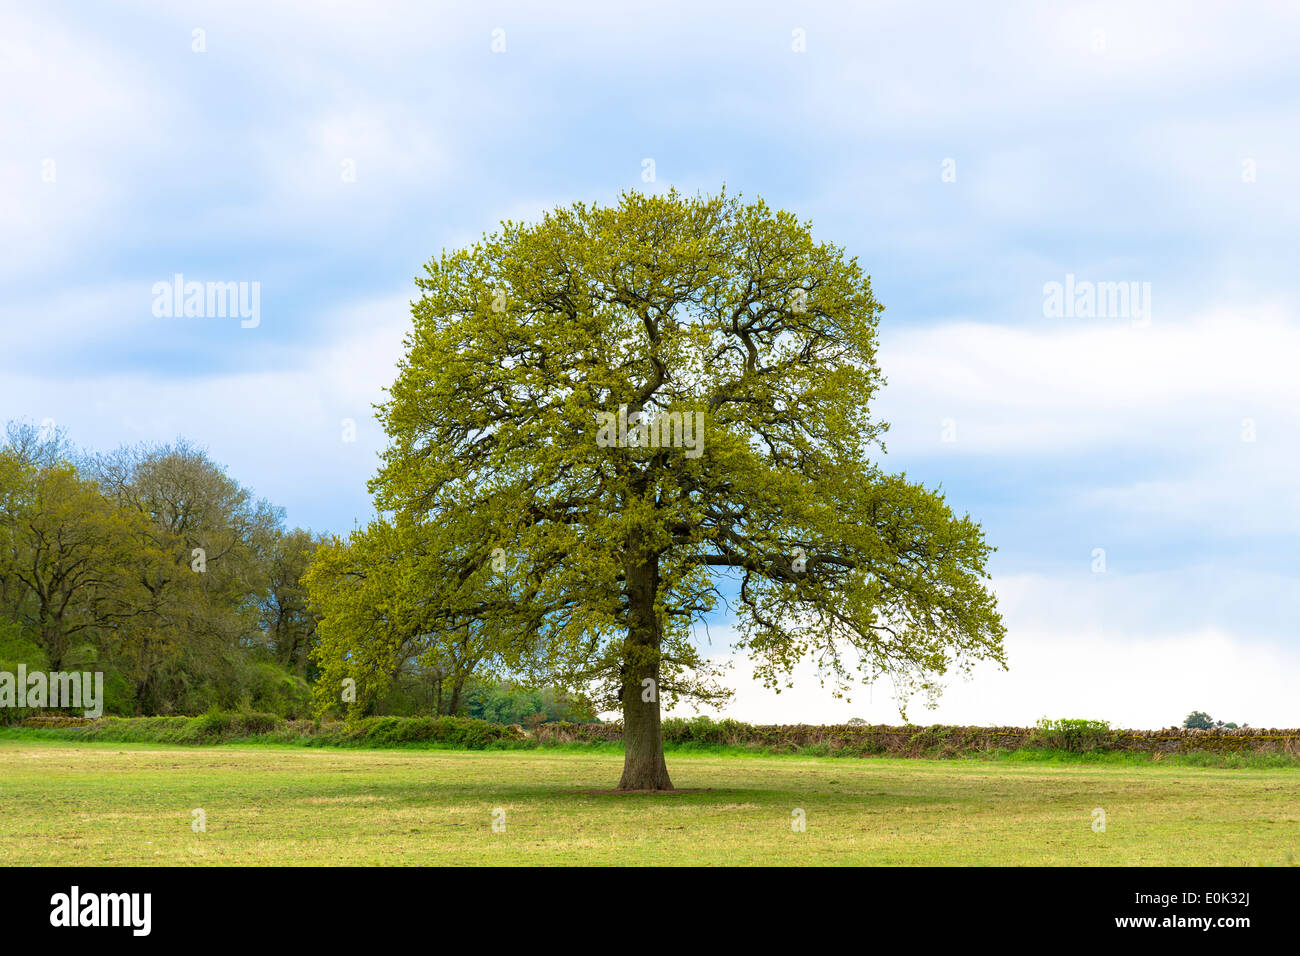 English Oak tree, Quercus robur, as Spring turns to Summer in Swinbrook in the Cotswolds, Oxfordshire, UK - Stock Image